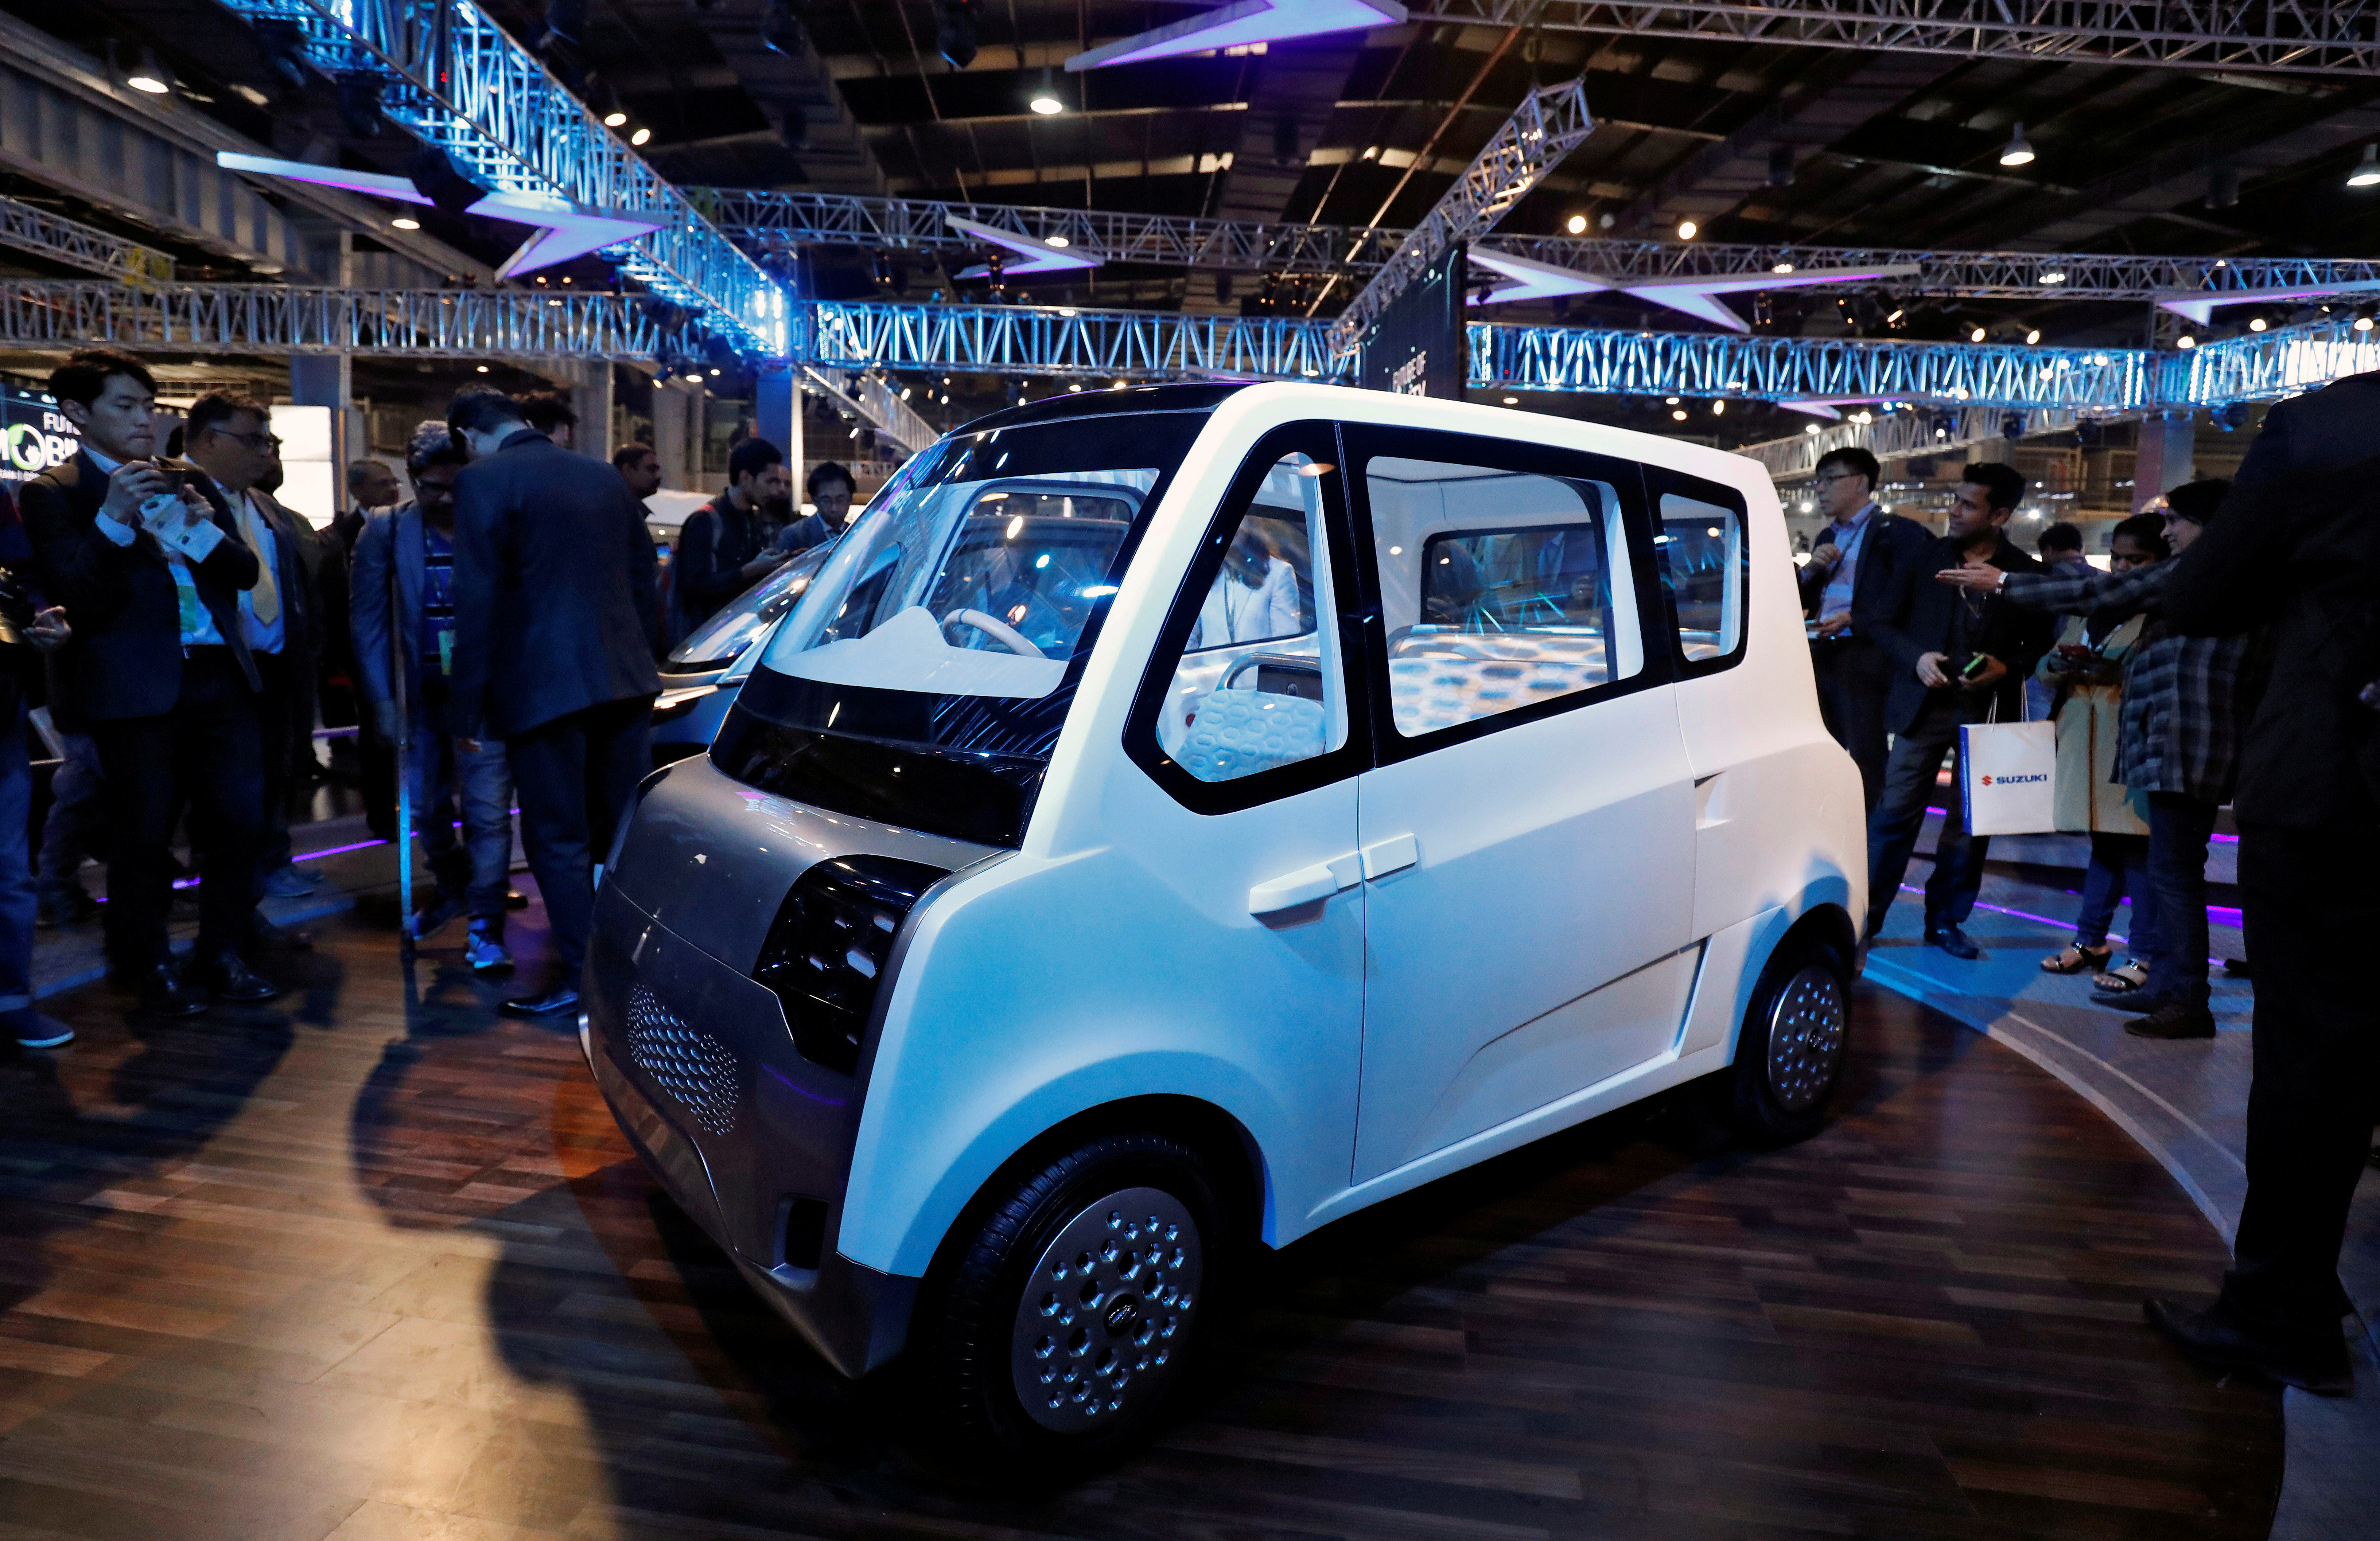 Mahindra showcases its new electric vehicle, ATOM, at the India Auto Show in Greater Noida, India, February 7, 2018. REUTERS/Saumya Khandelwal/File Photo